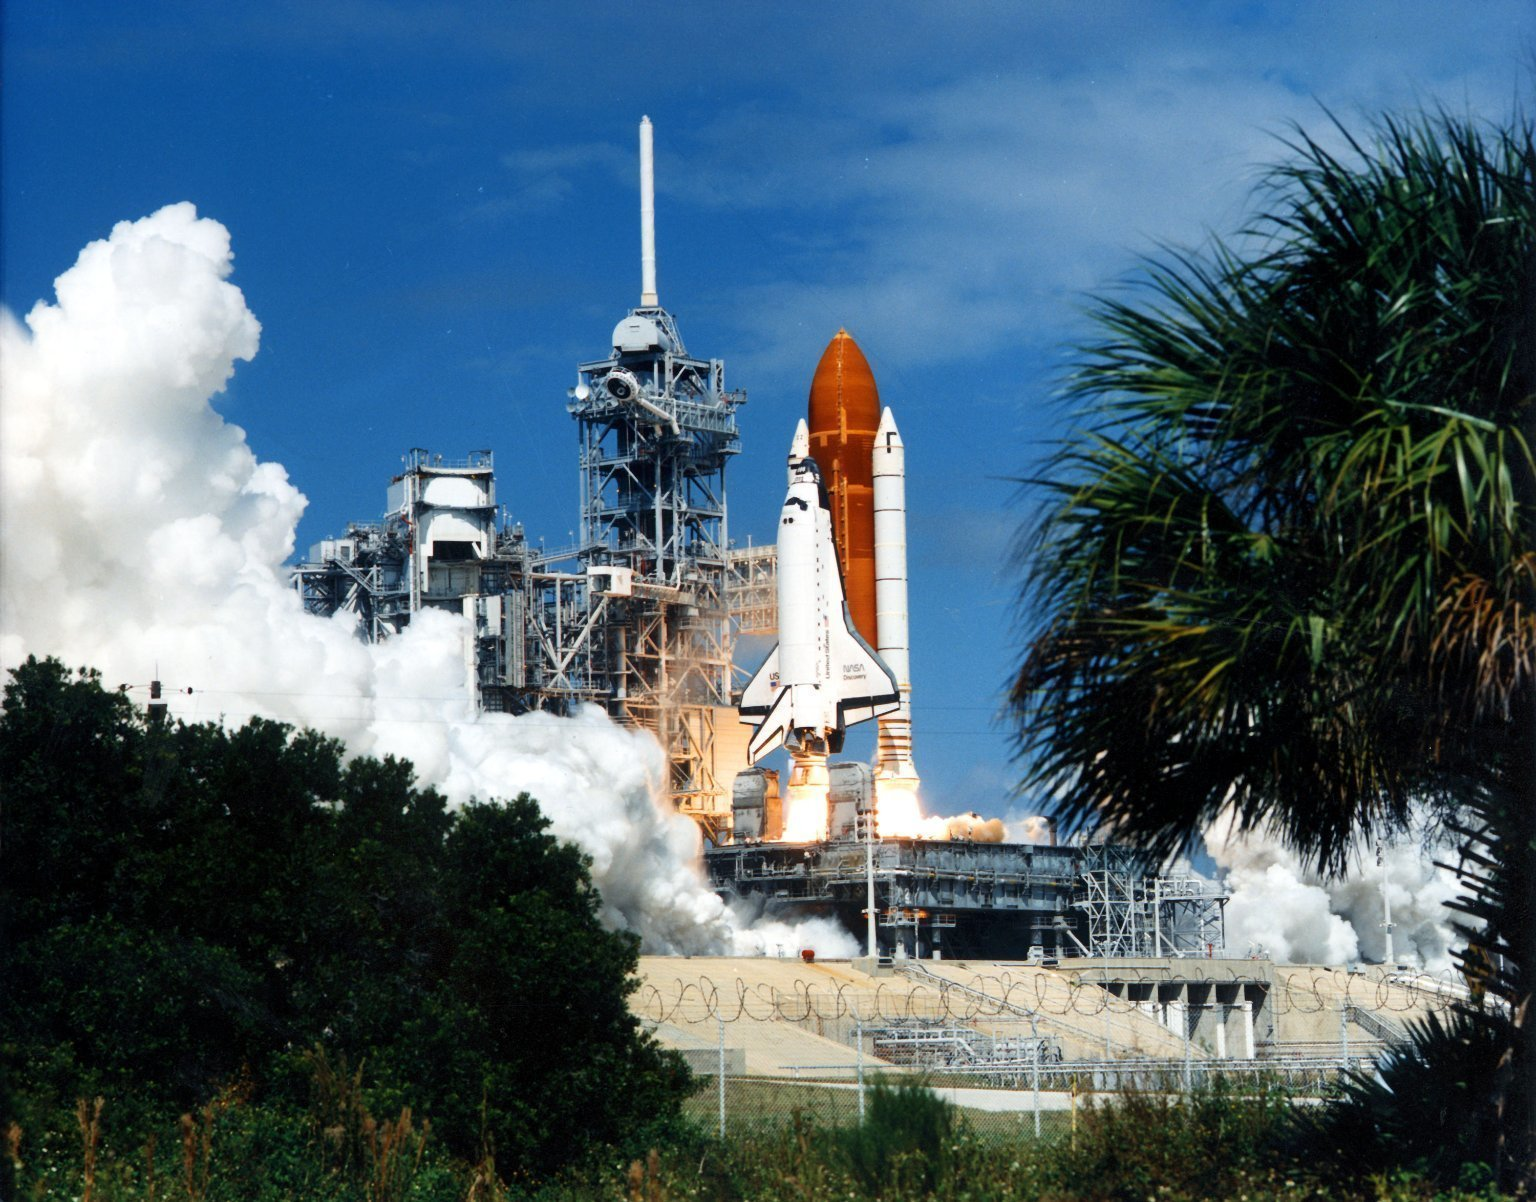 space shuttle program history - photo #45